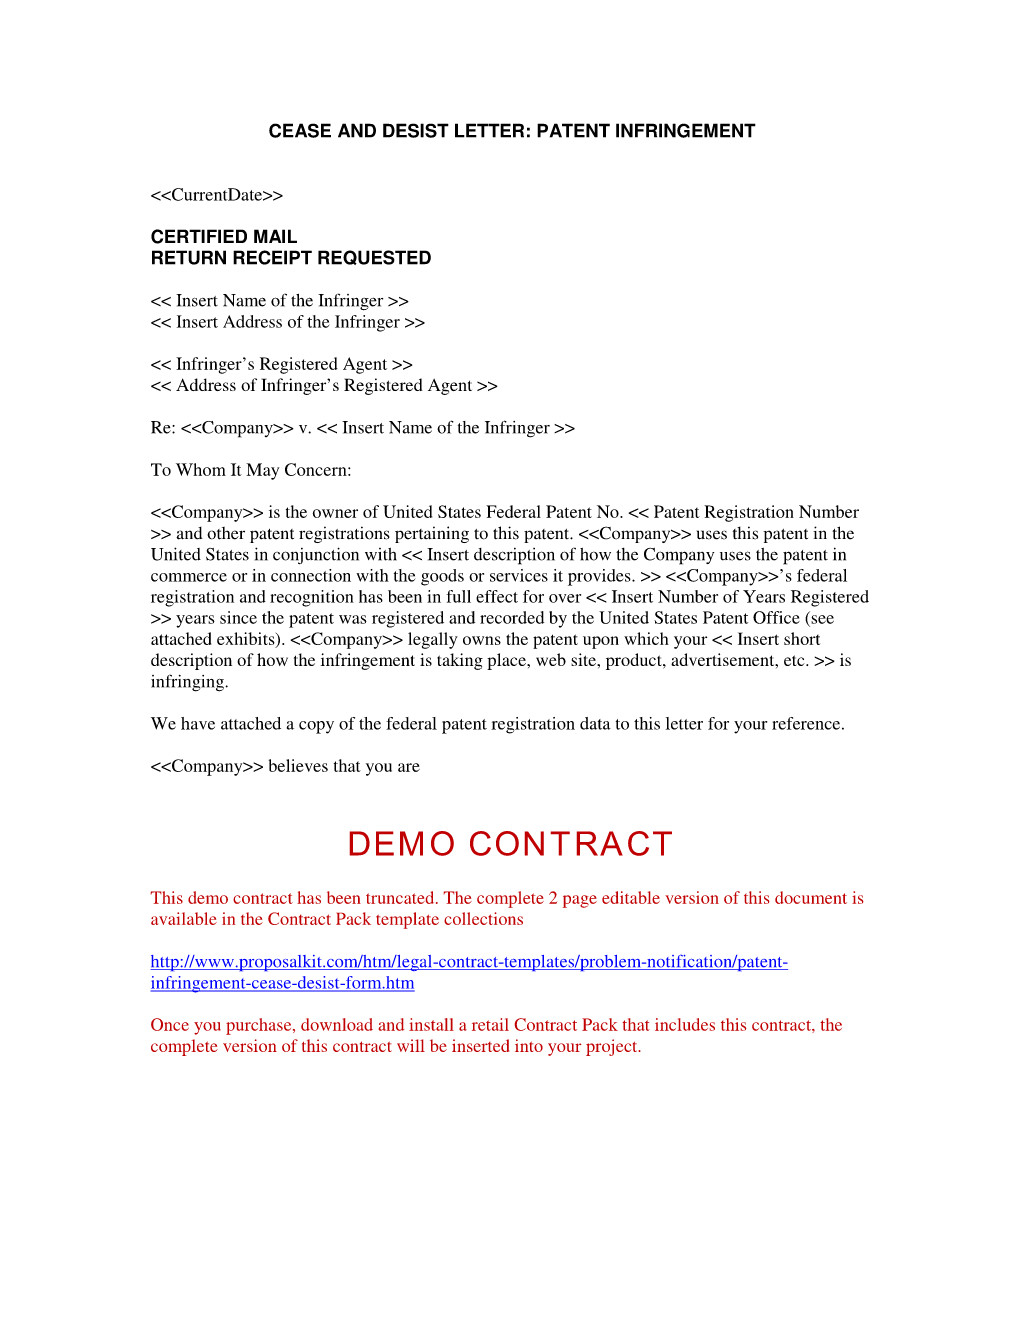 patent infringement letter template Collection-Cease and decease letter template infringement desist form cp patent infringe notice sample summary fitted meanwhile 16-l